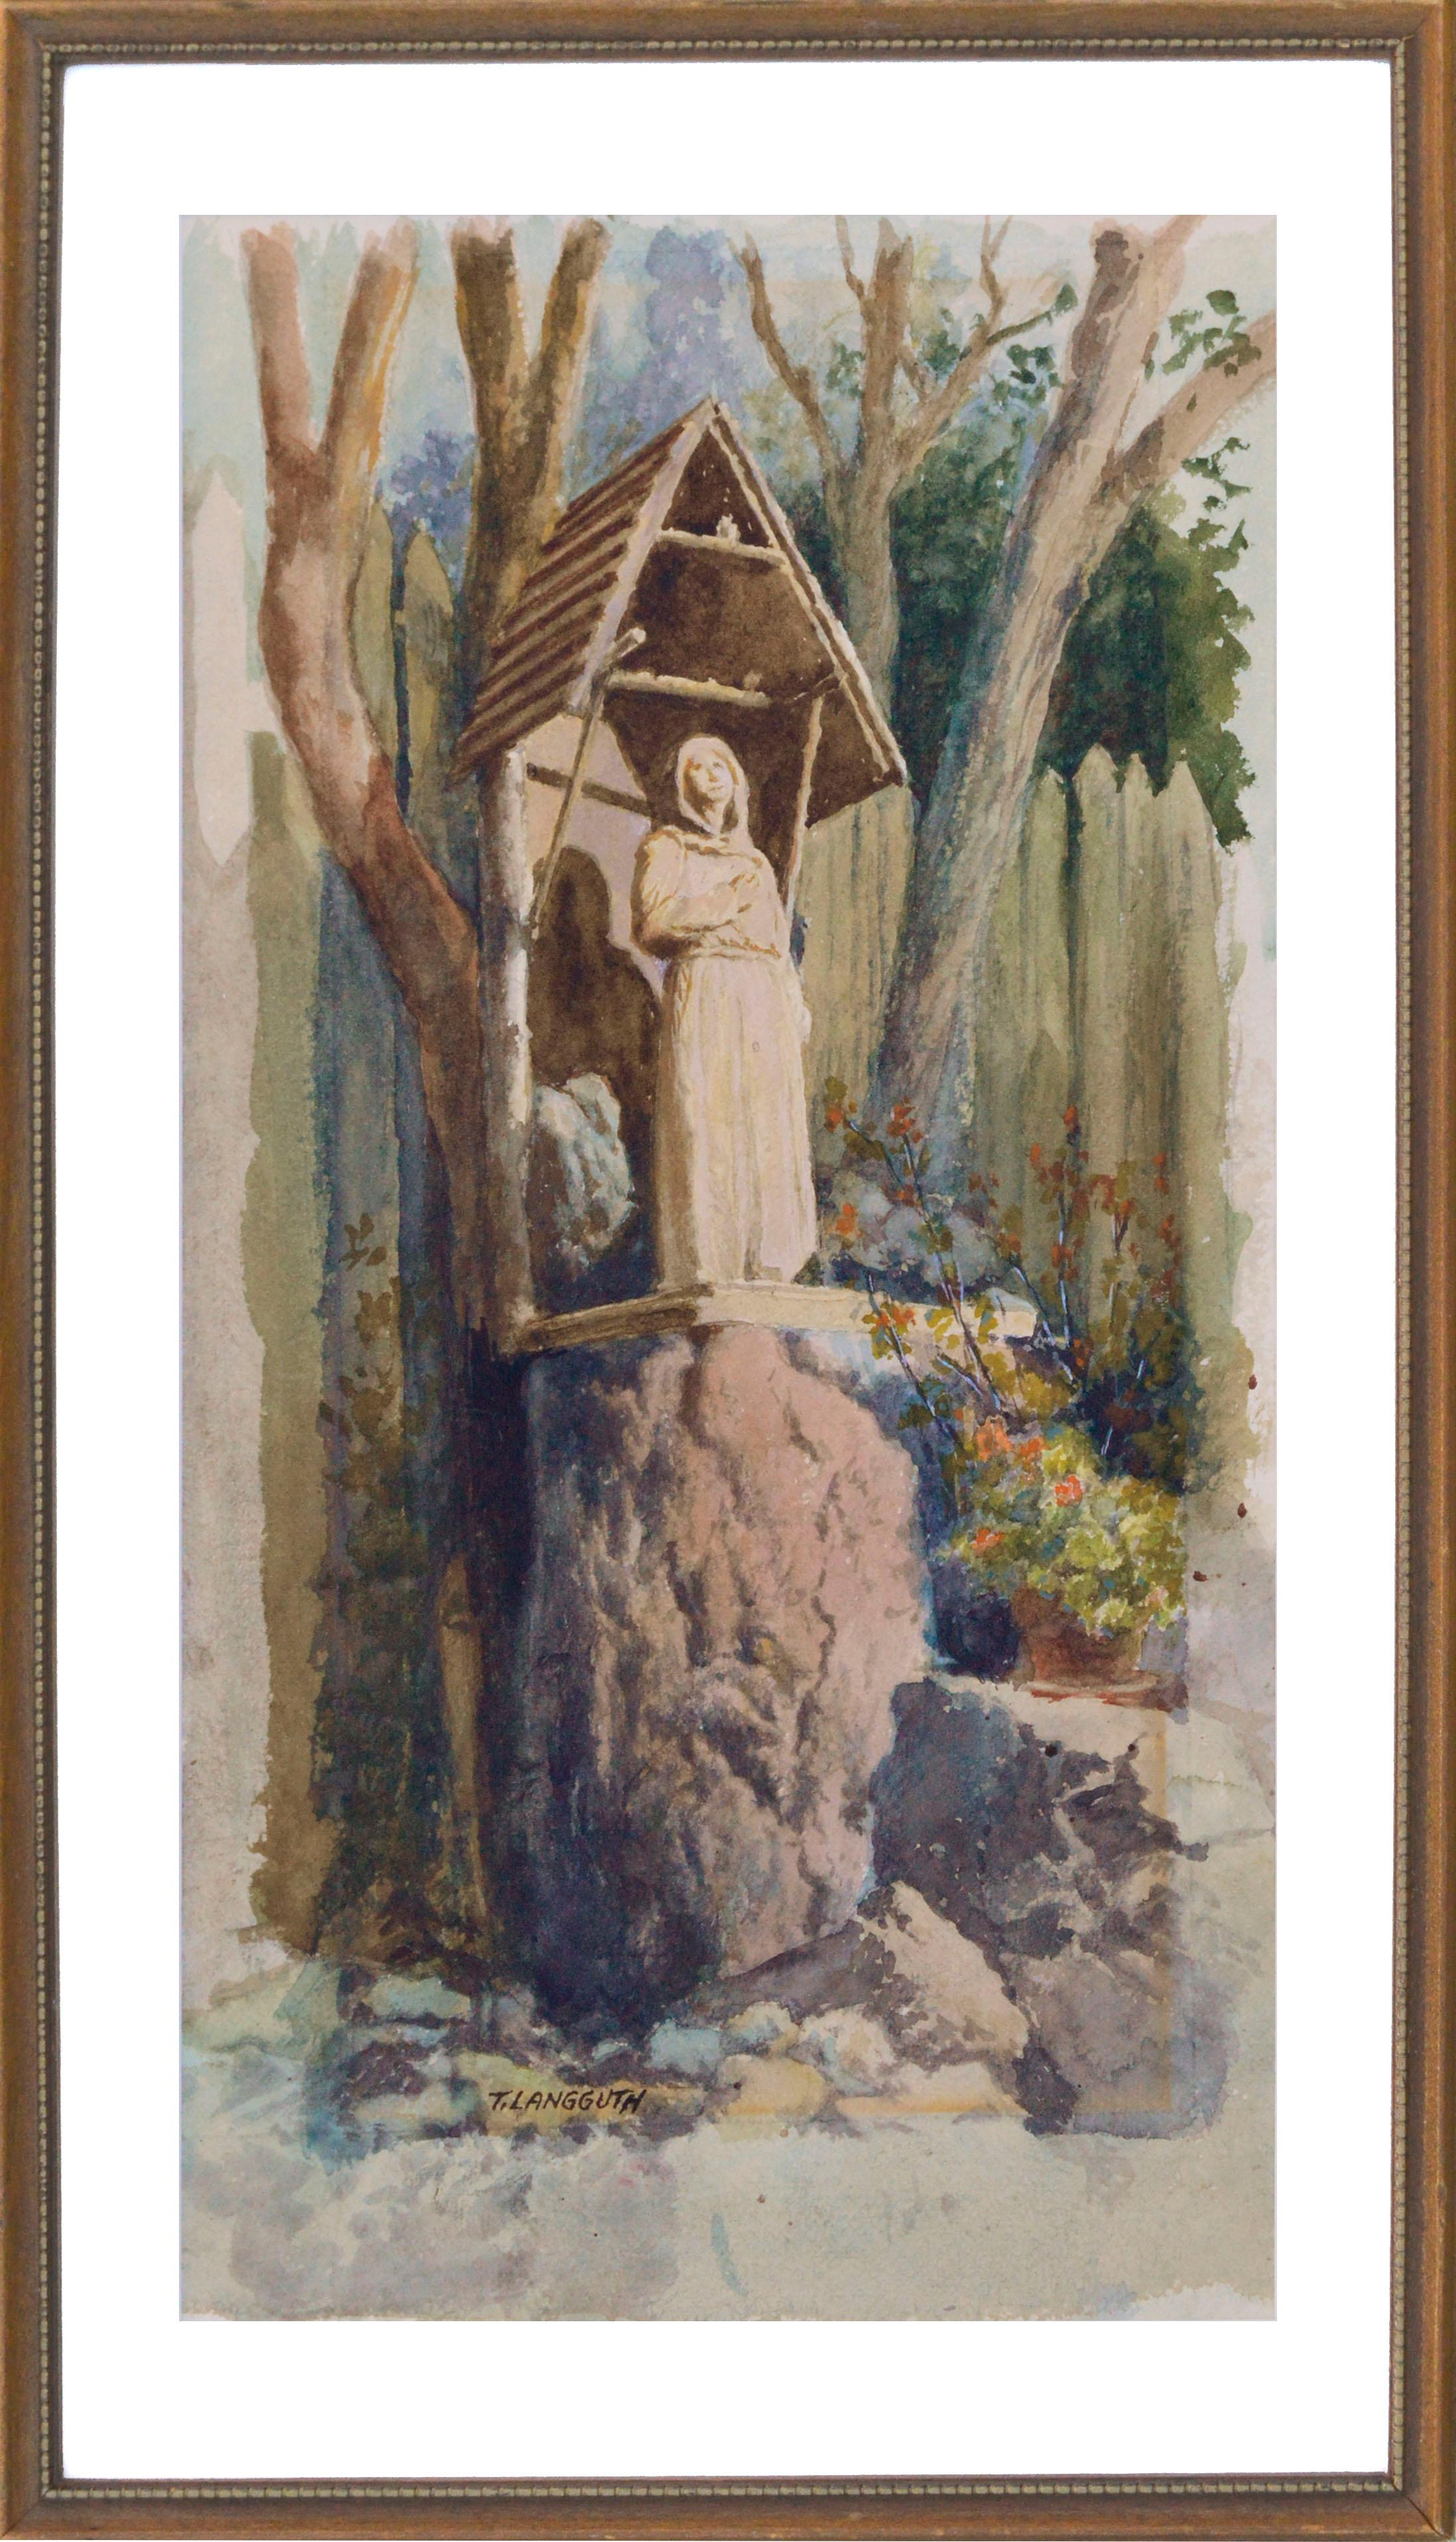 Statue of an Ascetic (The Hermit)